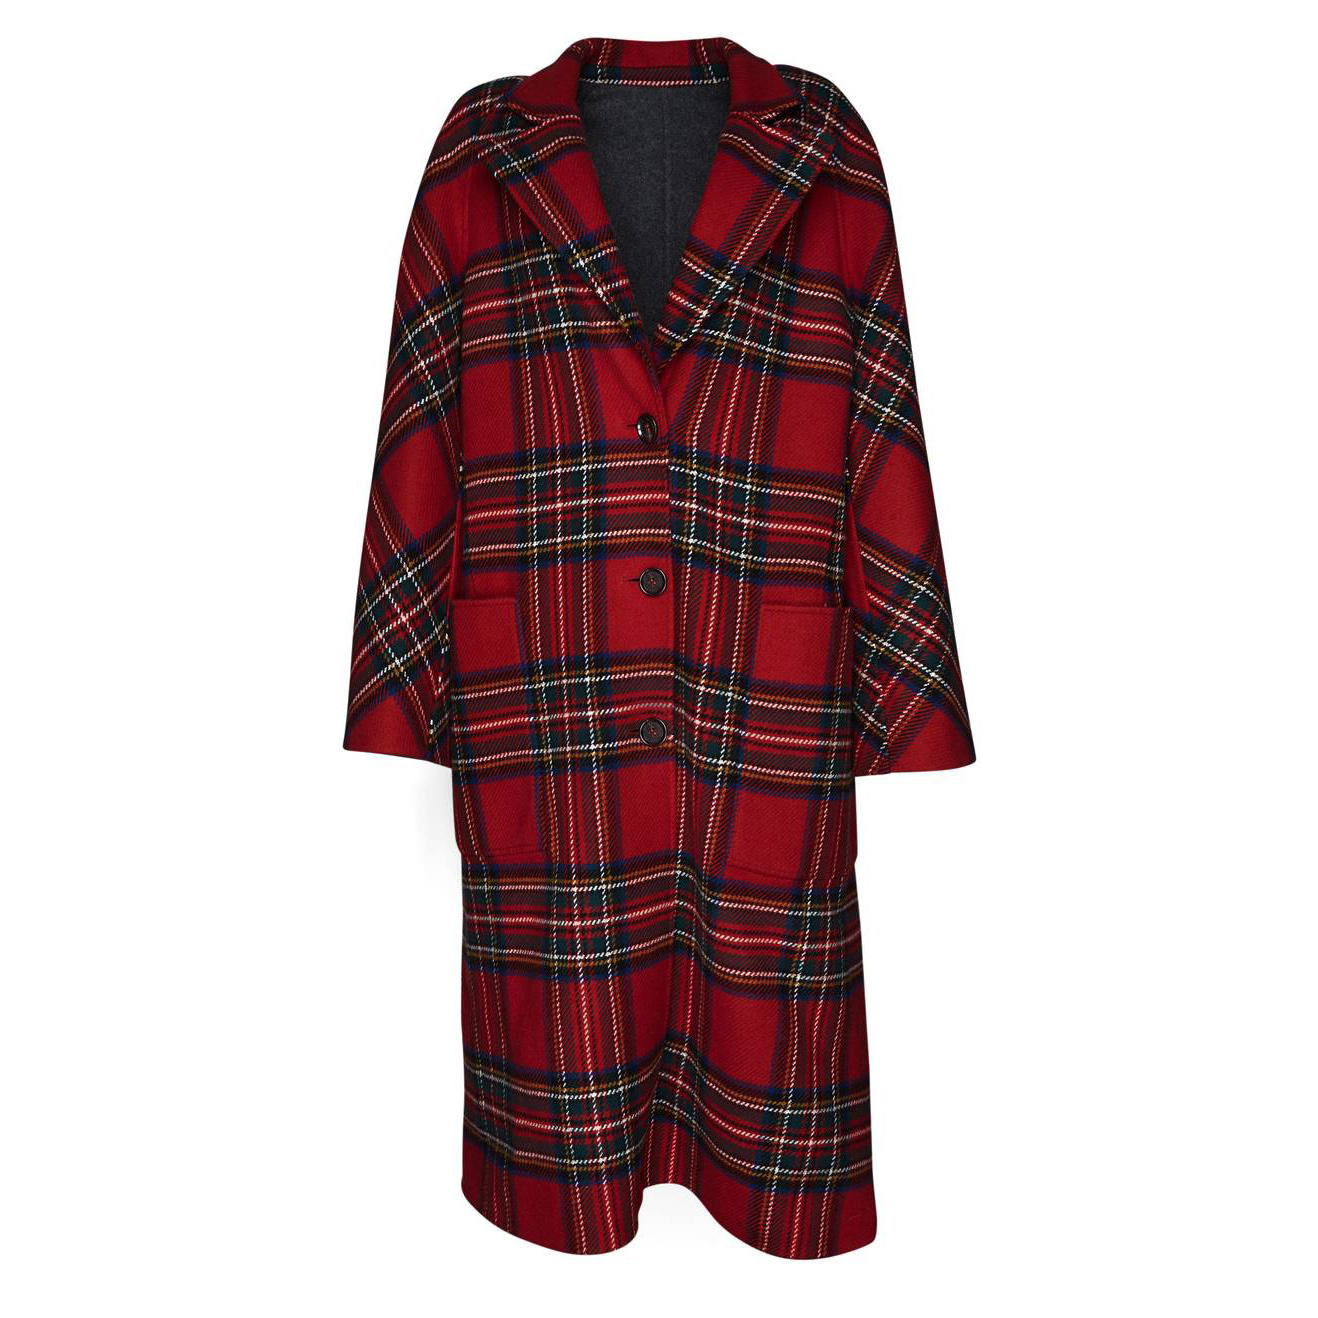 Scottish Tartan Wool & Cashmere Reversible Coat